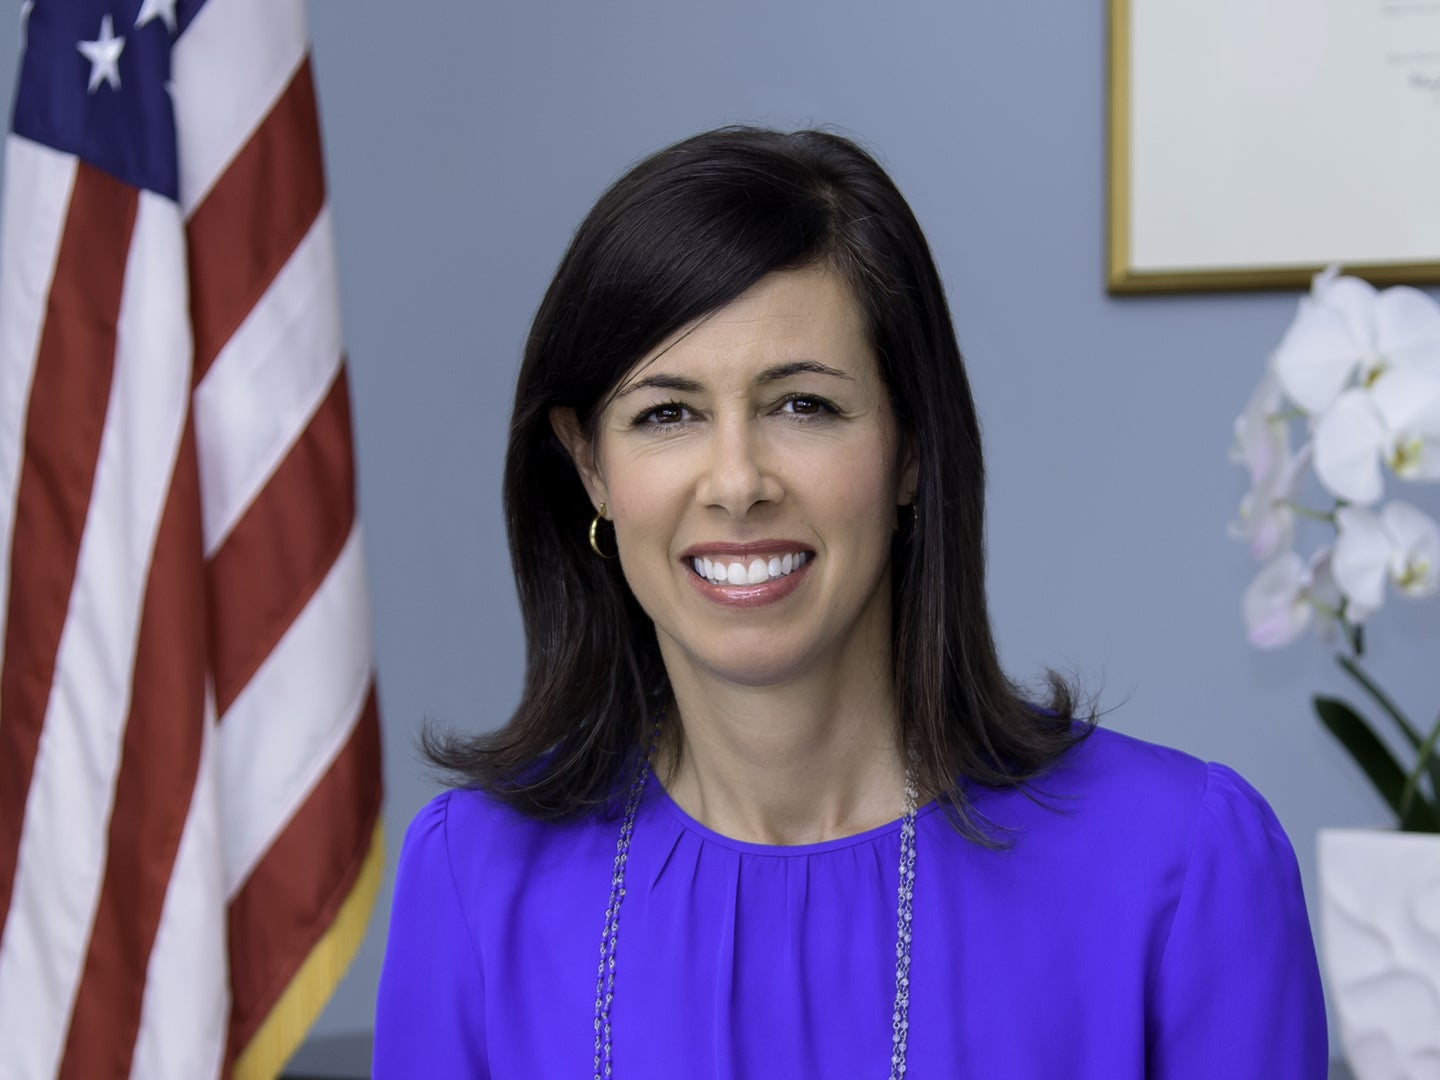 A headshot of Jessica Rosenworcel, acting chair of the FCC.